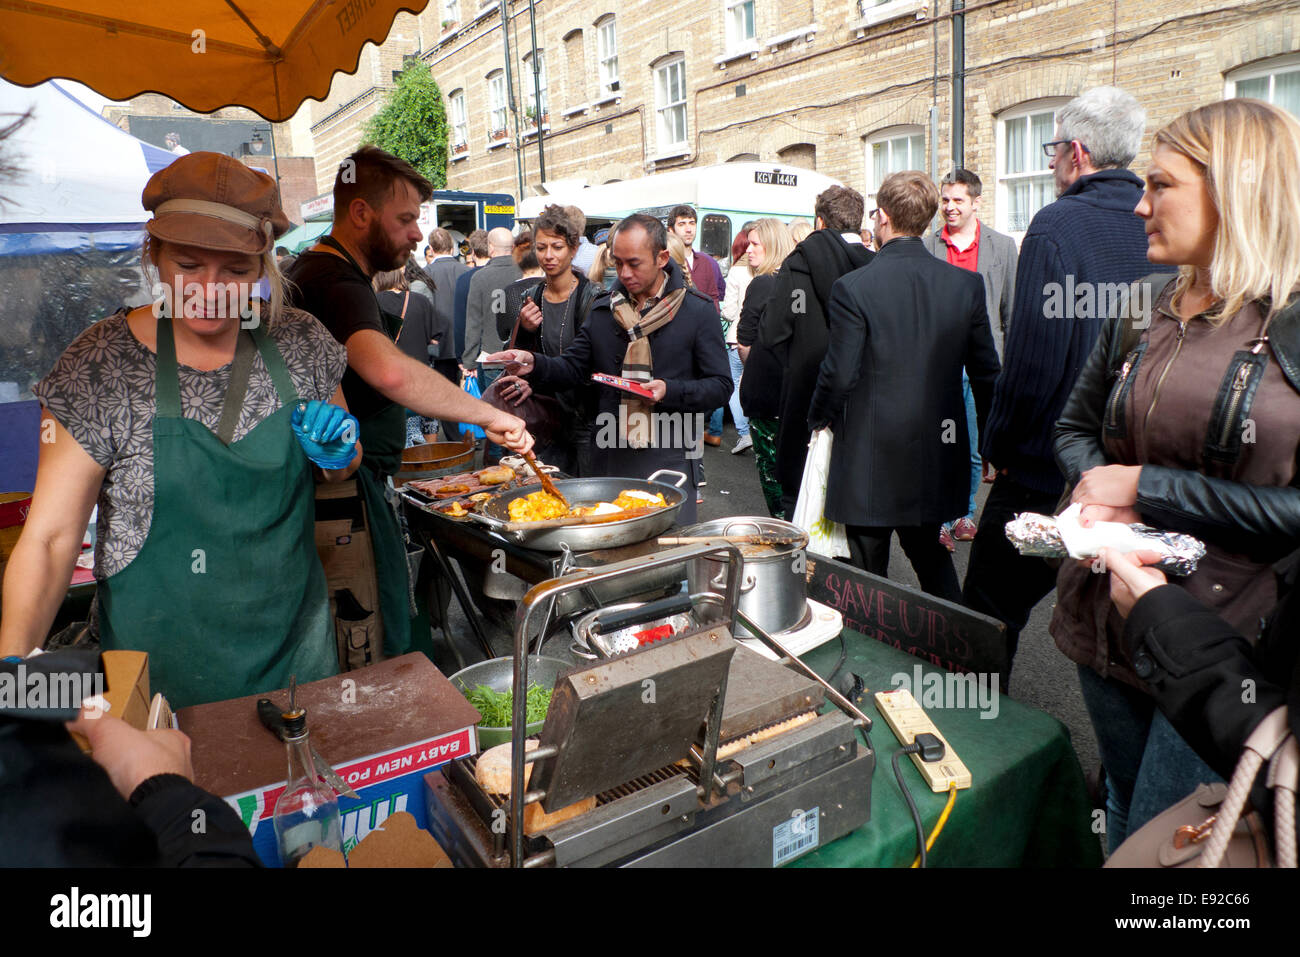 Whitecross Street, London UK. 17th October 2014. People descend on Whitecross Street Market near Old Street at mid - Stock Image